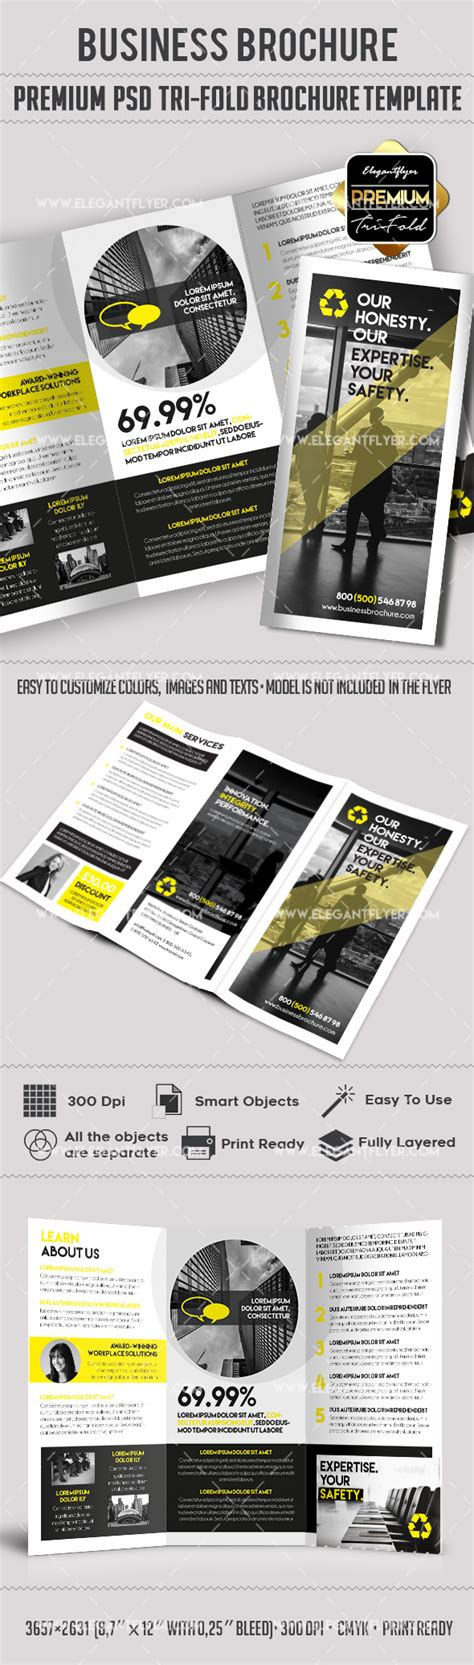 psd brochure design inspiration business brochure design inspiration by elegantflyer